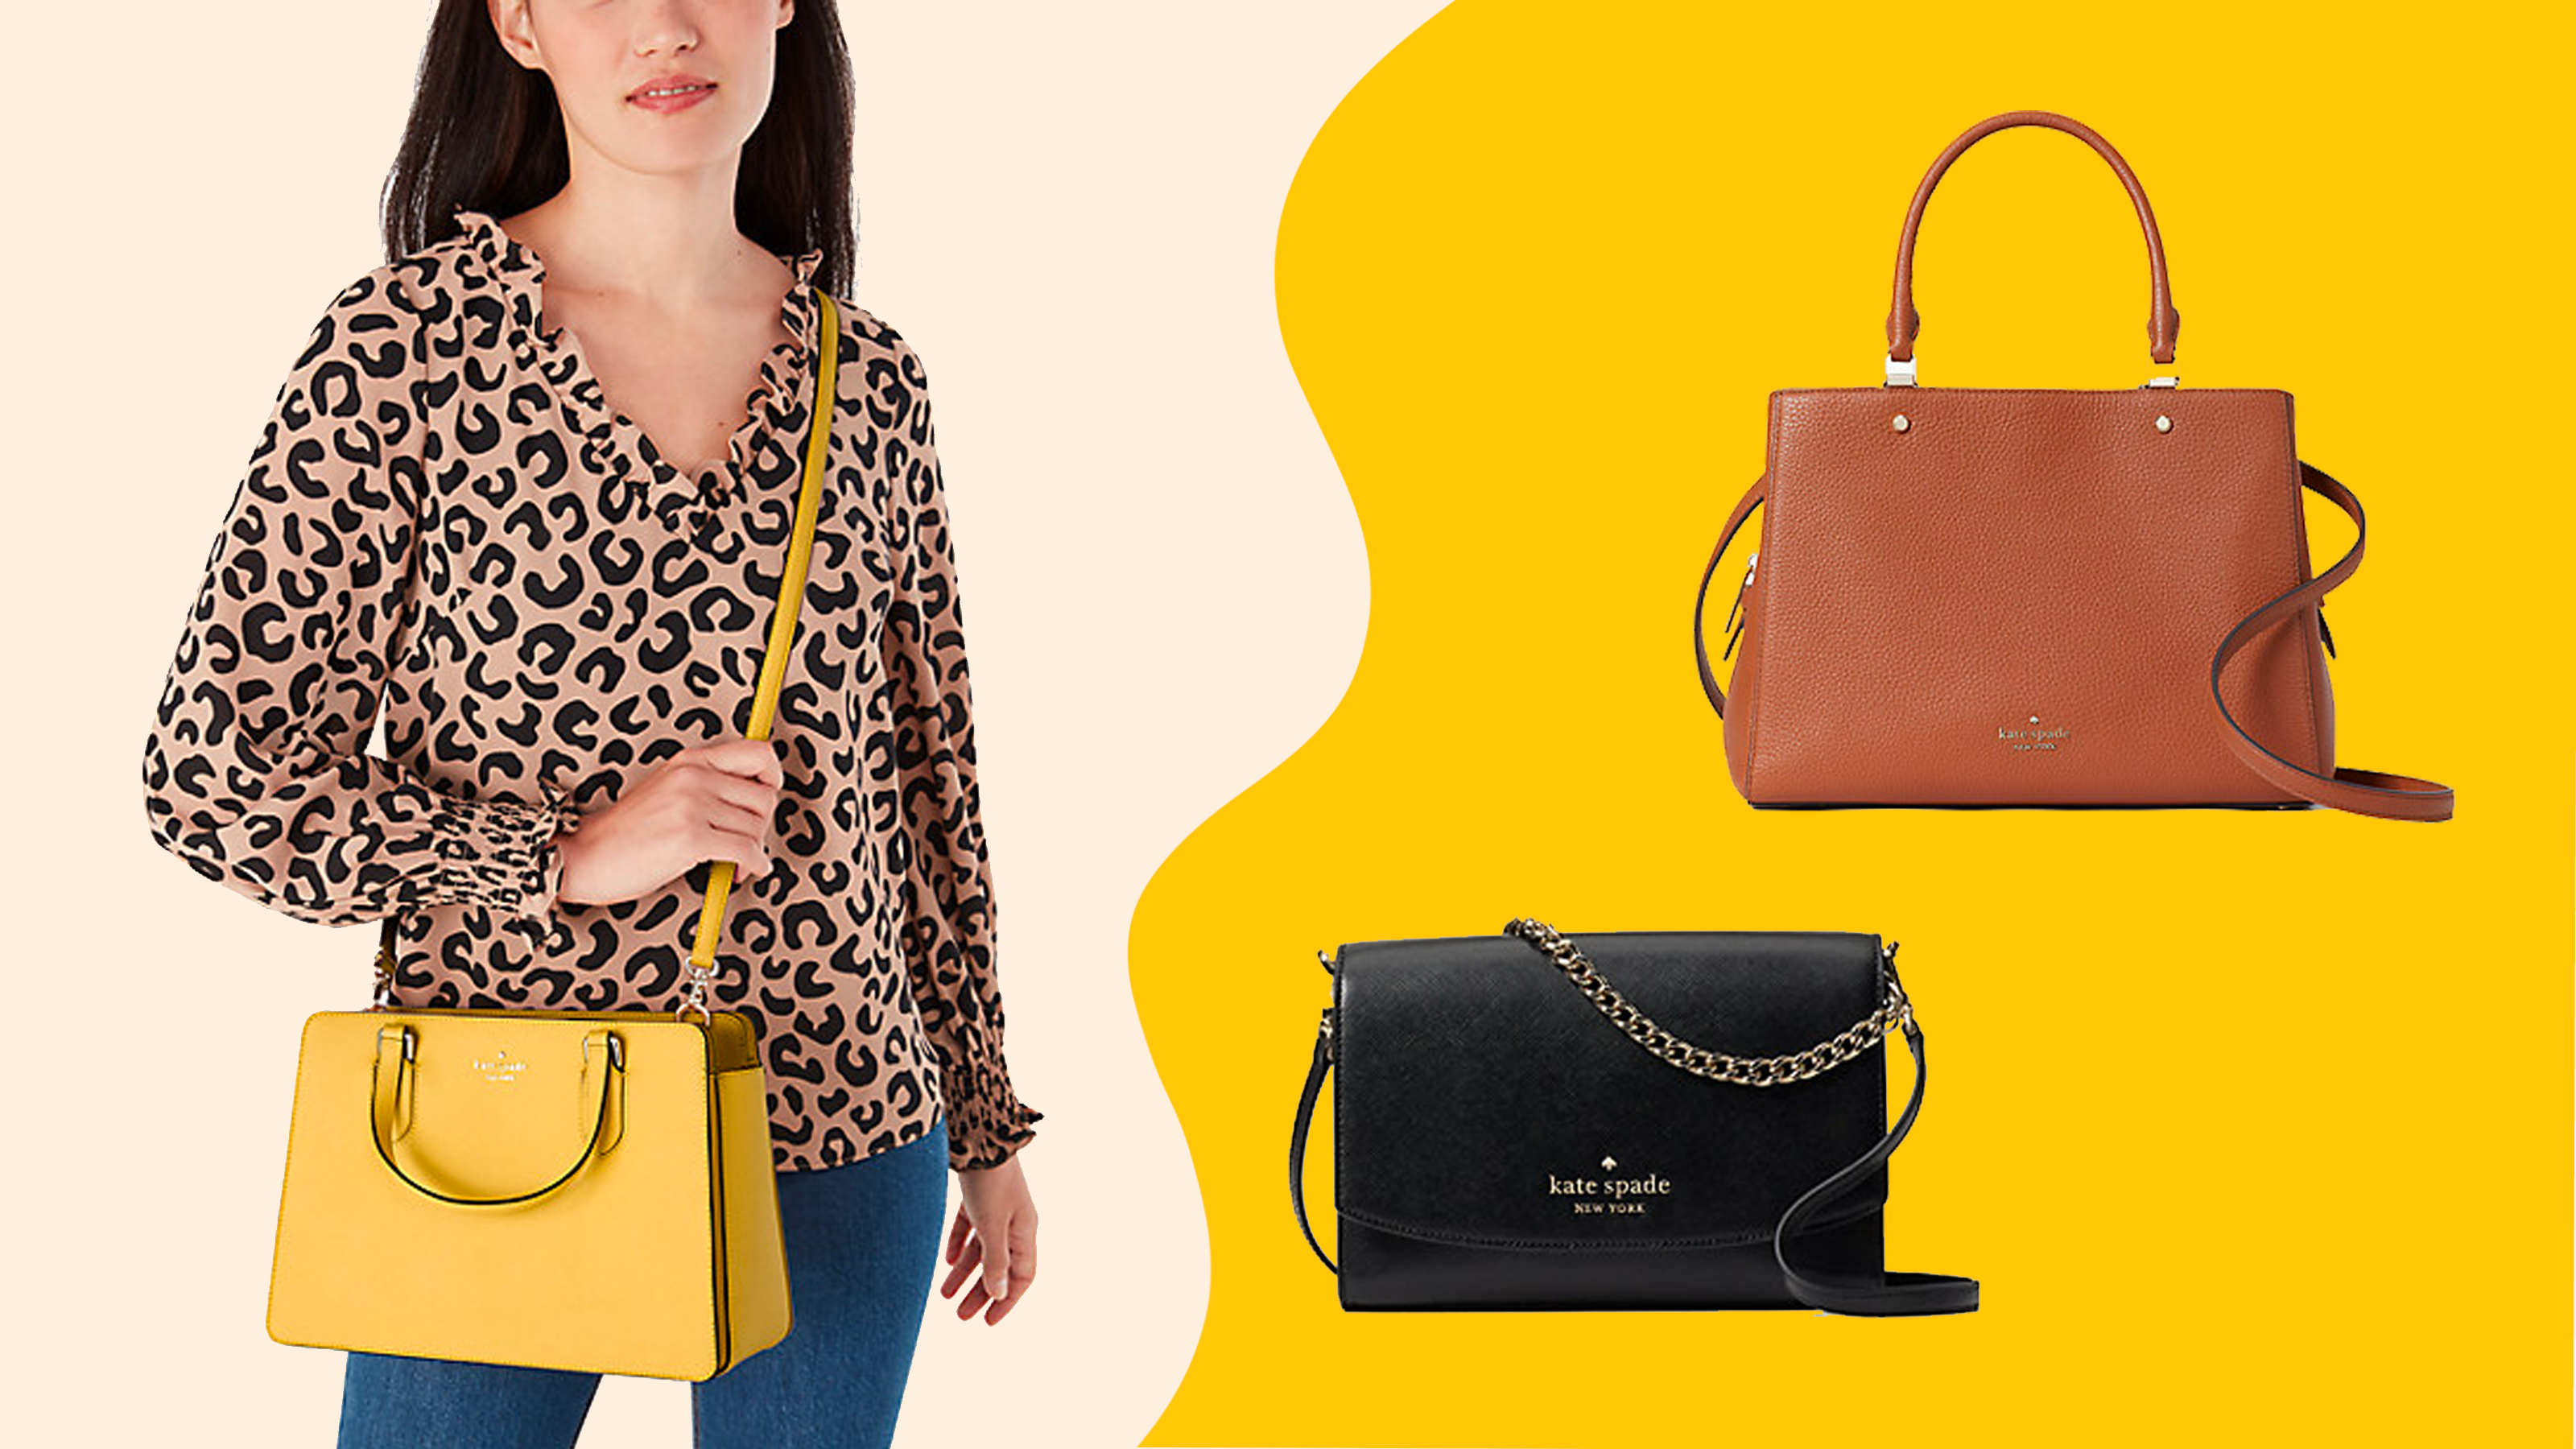 Save up to 75% on Kate Spade purses, handbags and more—but only for today